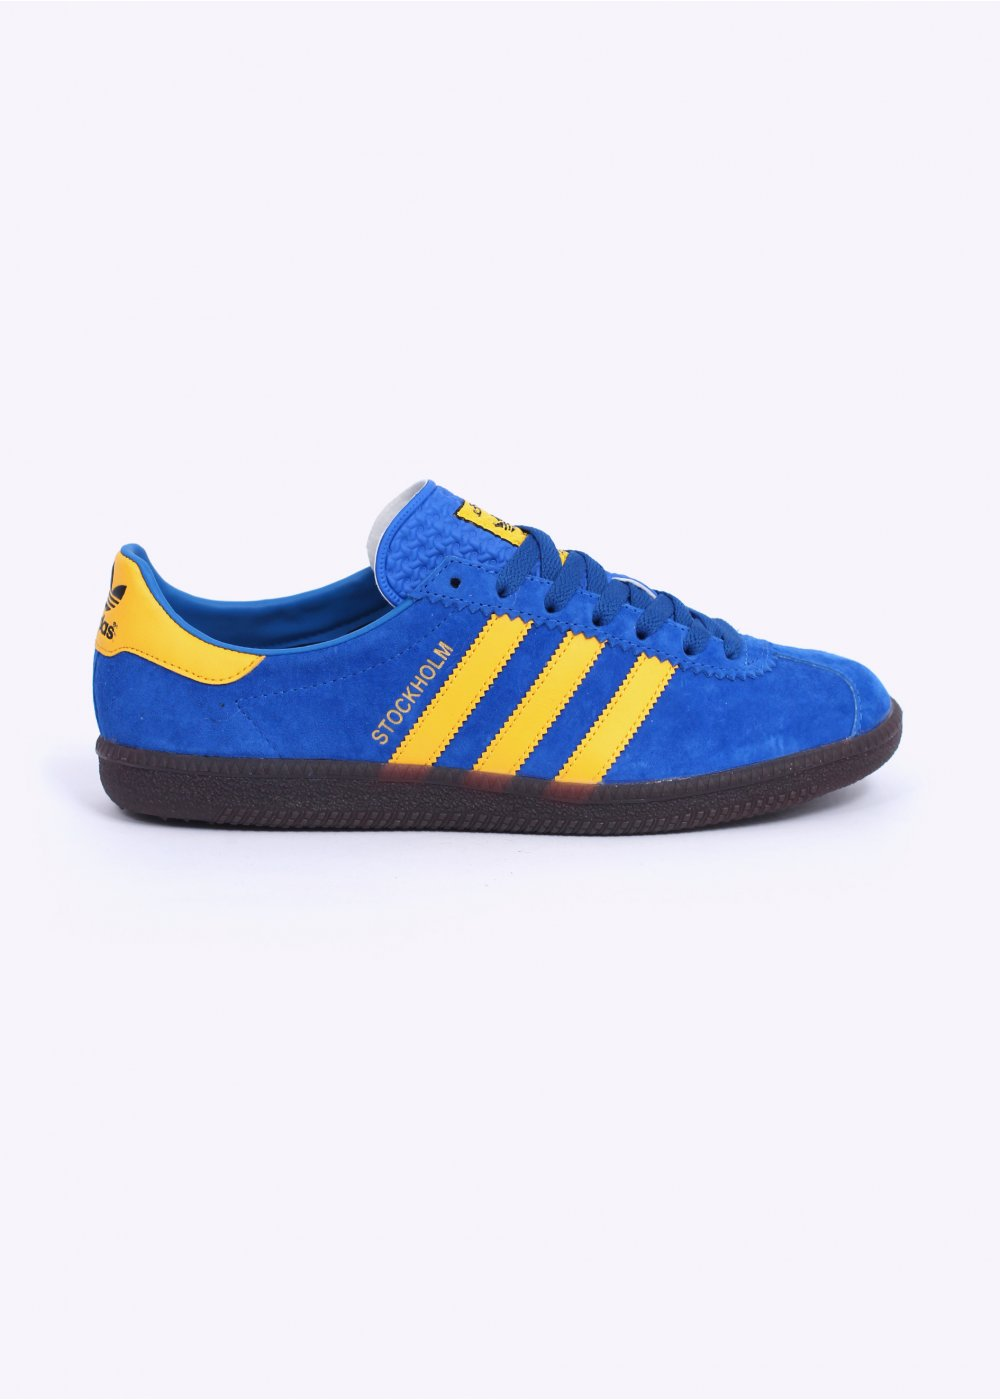 adidas Originals Stockholm Trainers - Blue   Yellow 1c212ea0f6f20